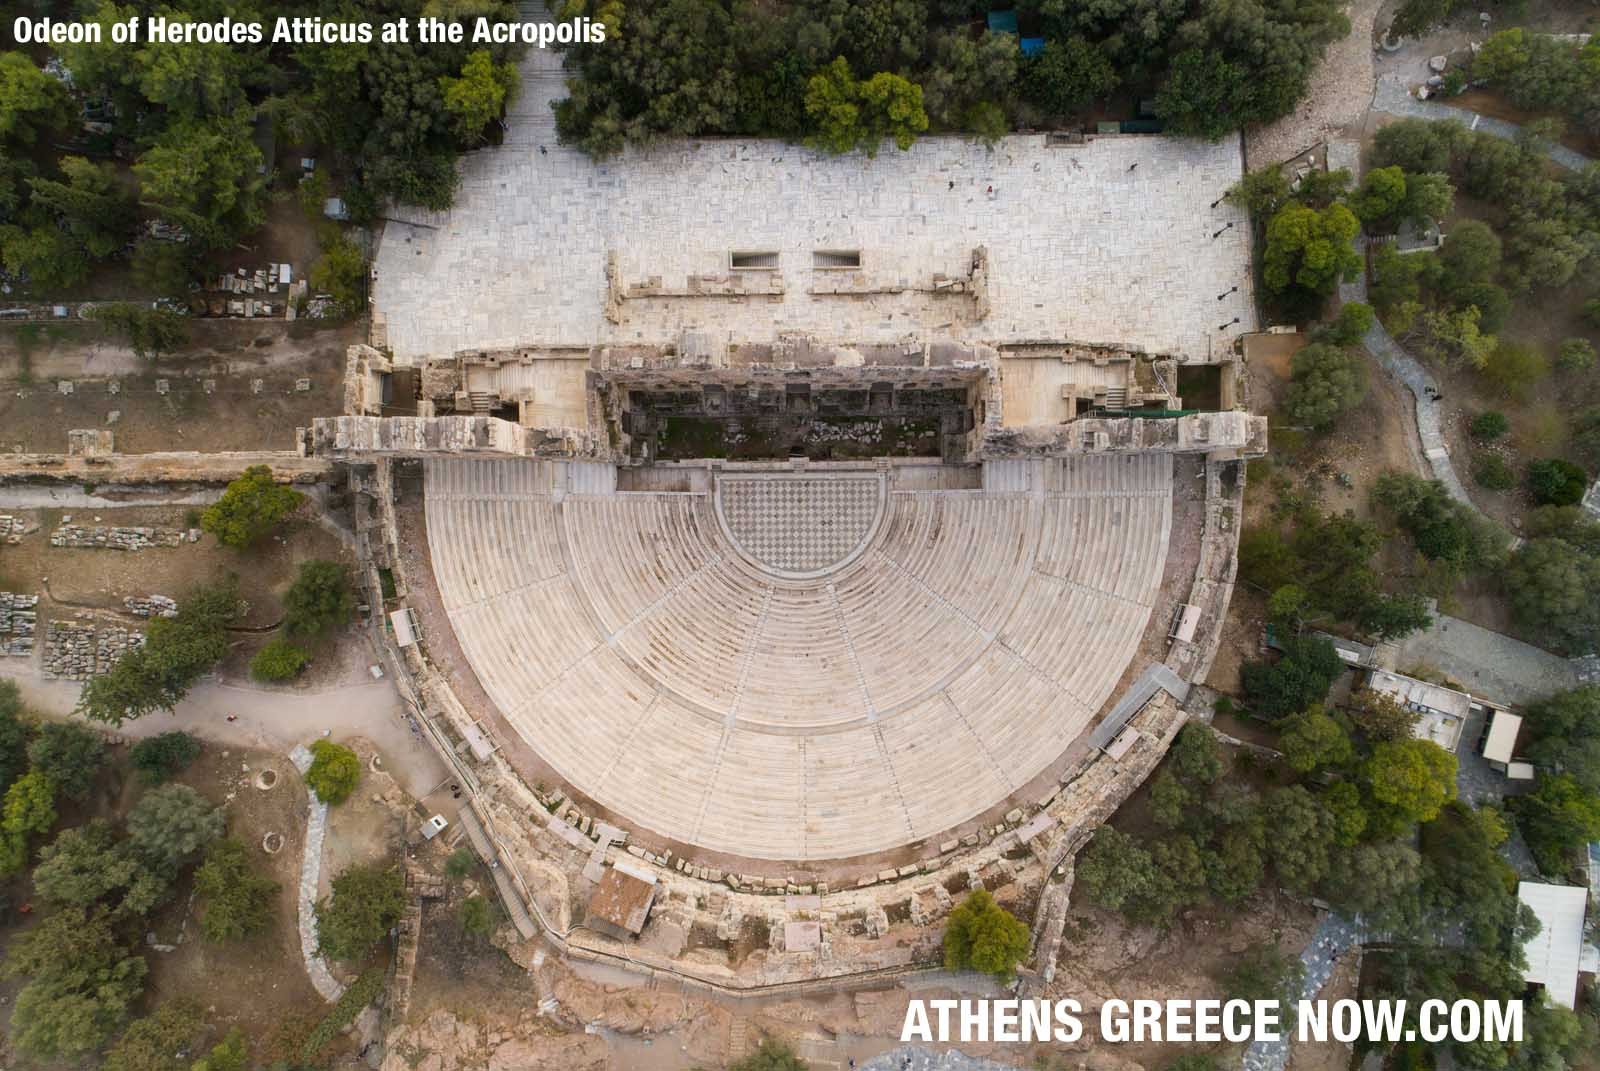 Enlarged - sky view drone - Odeon of Herodes Atticus at the Acropolis in Athens Greece